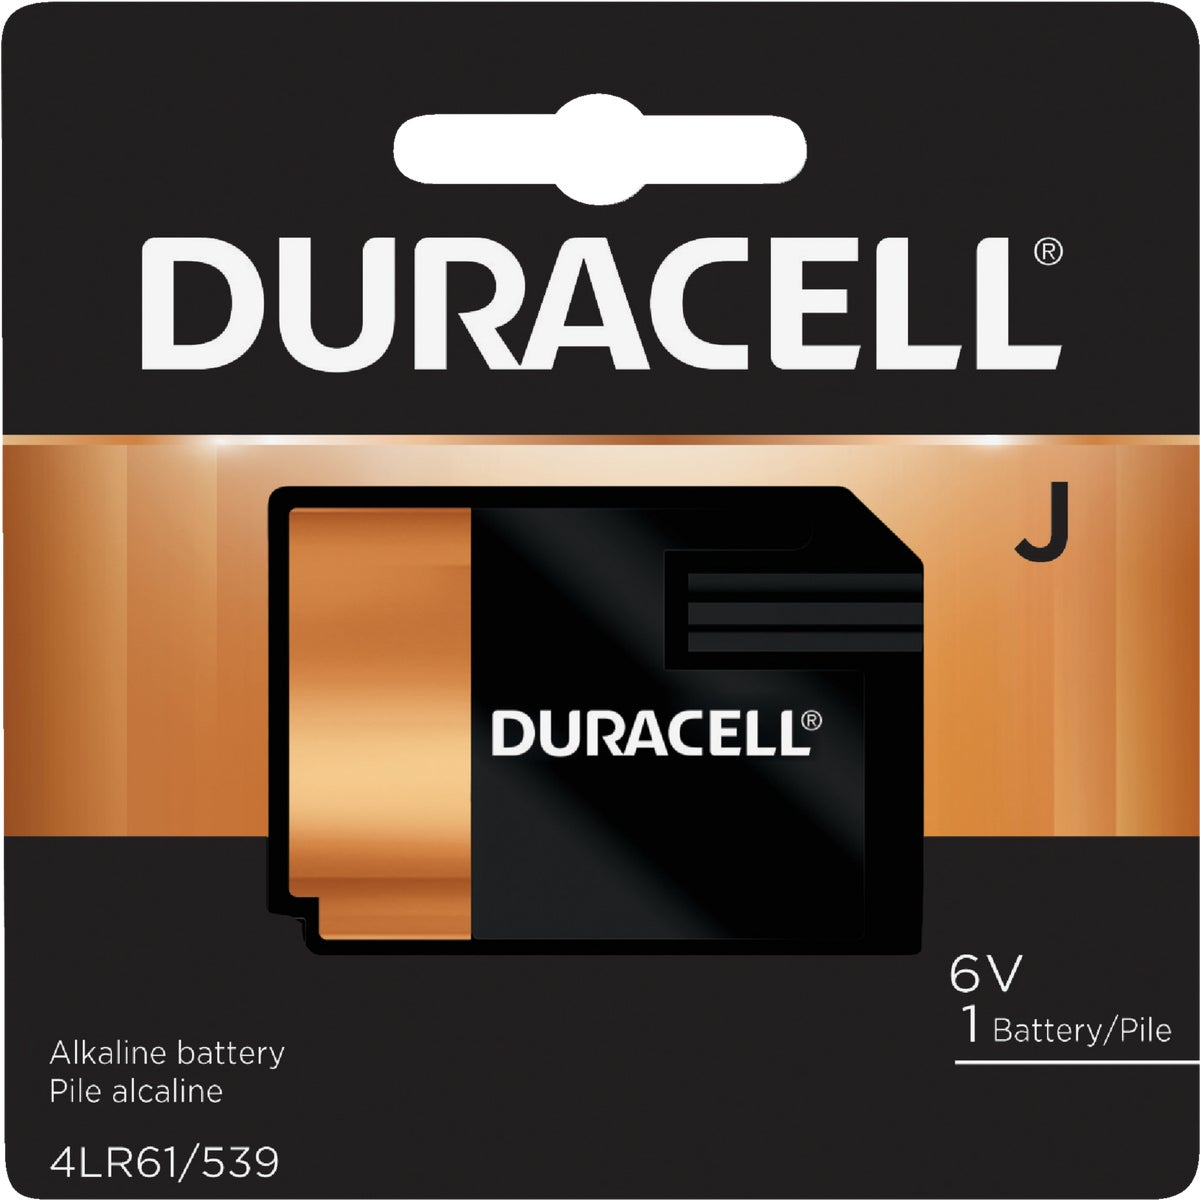 7K67 6V HOME MED BATTERY - 28787 by P & G  Duracell